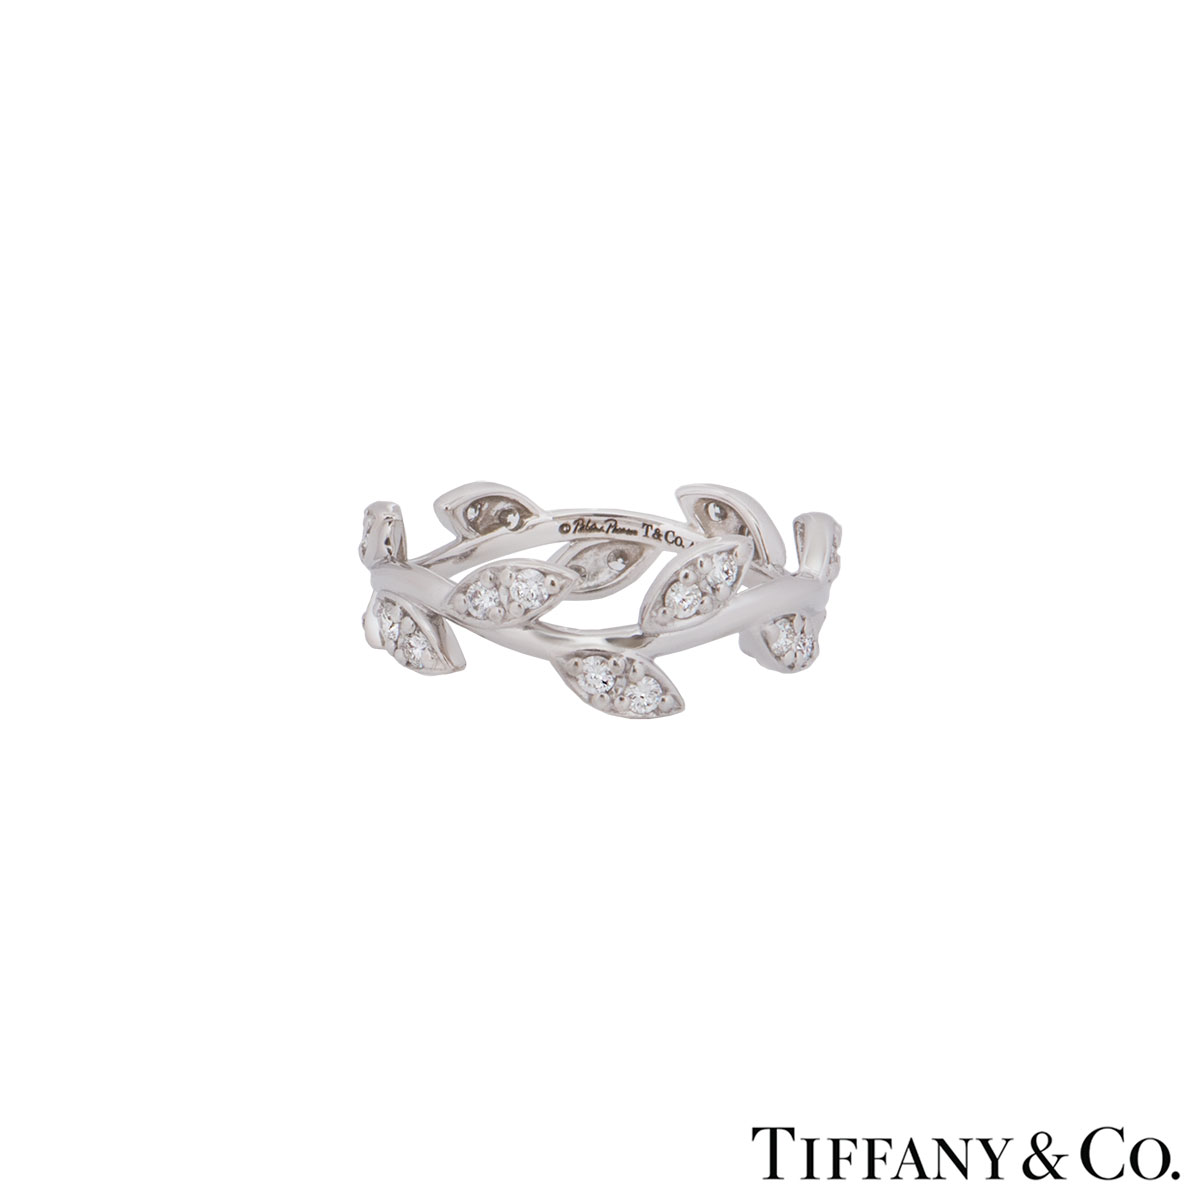 Tiffany & Co. White Gold Diamond Olive Leaf Paloma Picasso Ring